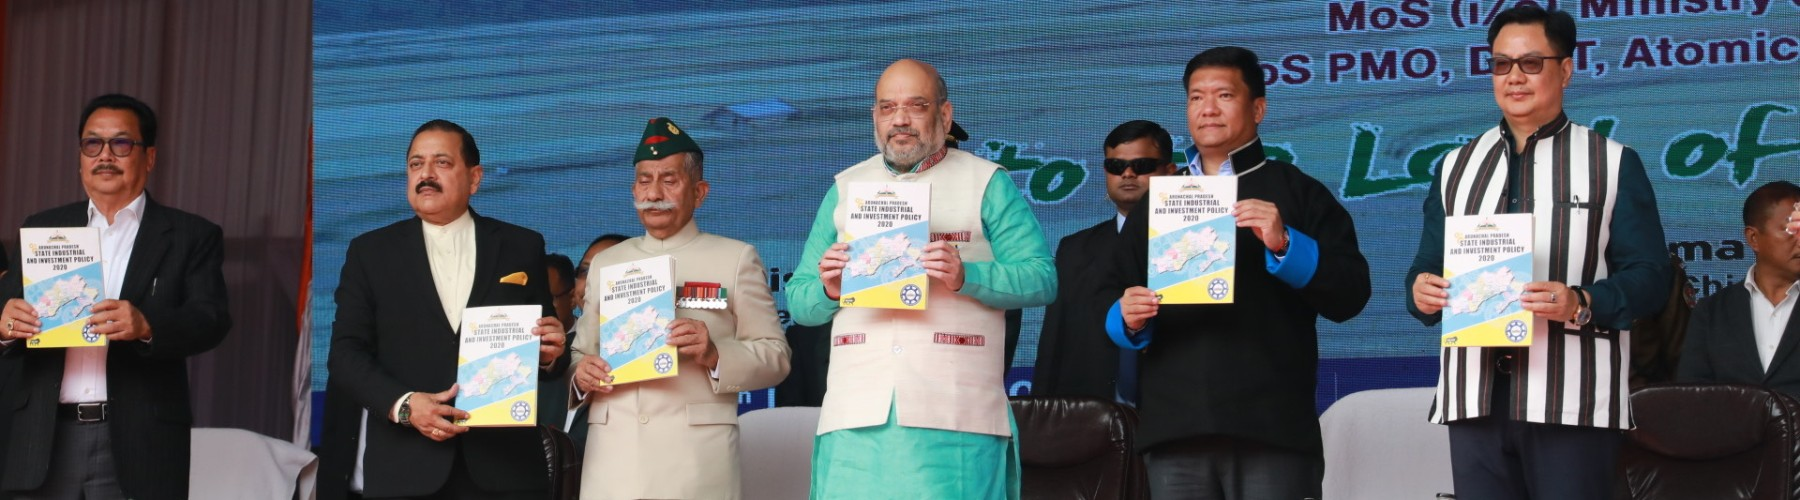 Union Minister for Home Affairs, Shri Amit Shah presides over the 34th Statehood Day celebrations of Arunachal Pradesh in Itanagar, on February 20, 2020. He launched of Arunachal Pradesh Industrial and Investment Policy 2020